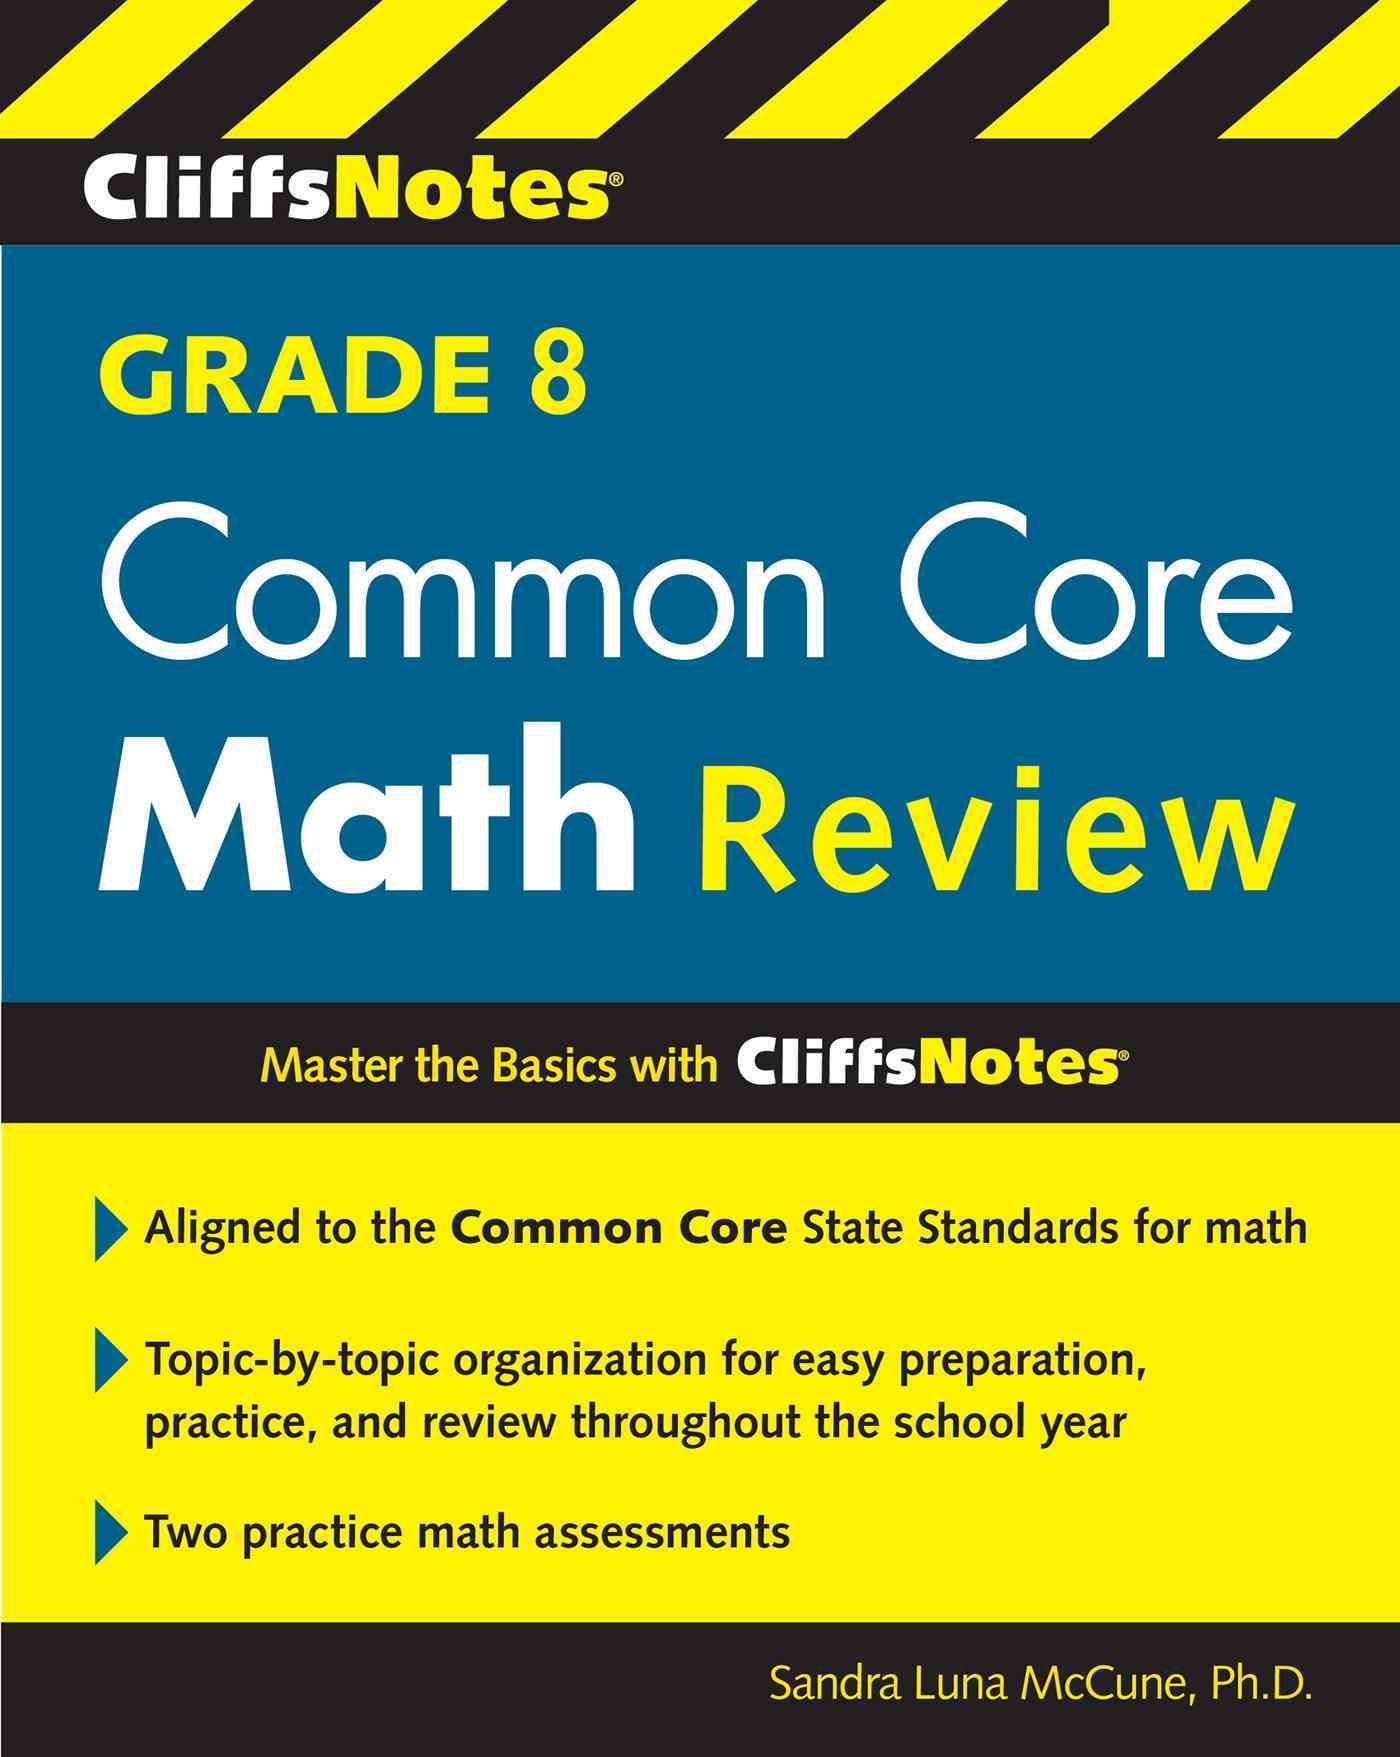 Cliffsnotes Grade 8 Common Core Math Review | Products | Pinterest ...